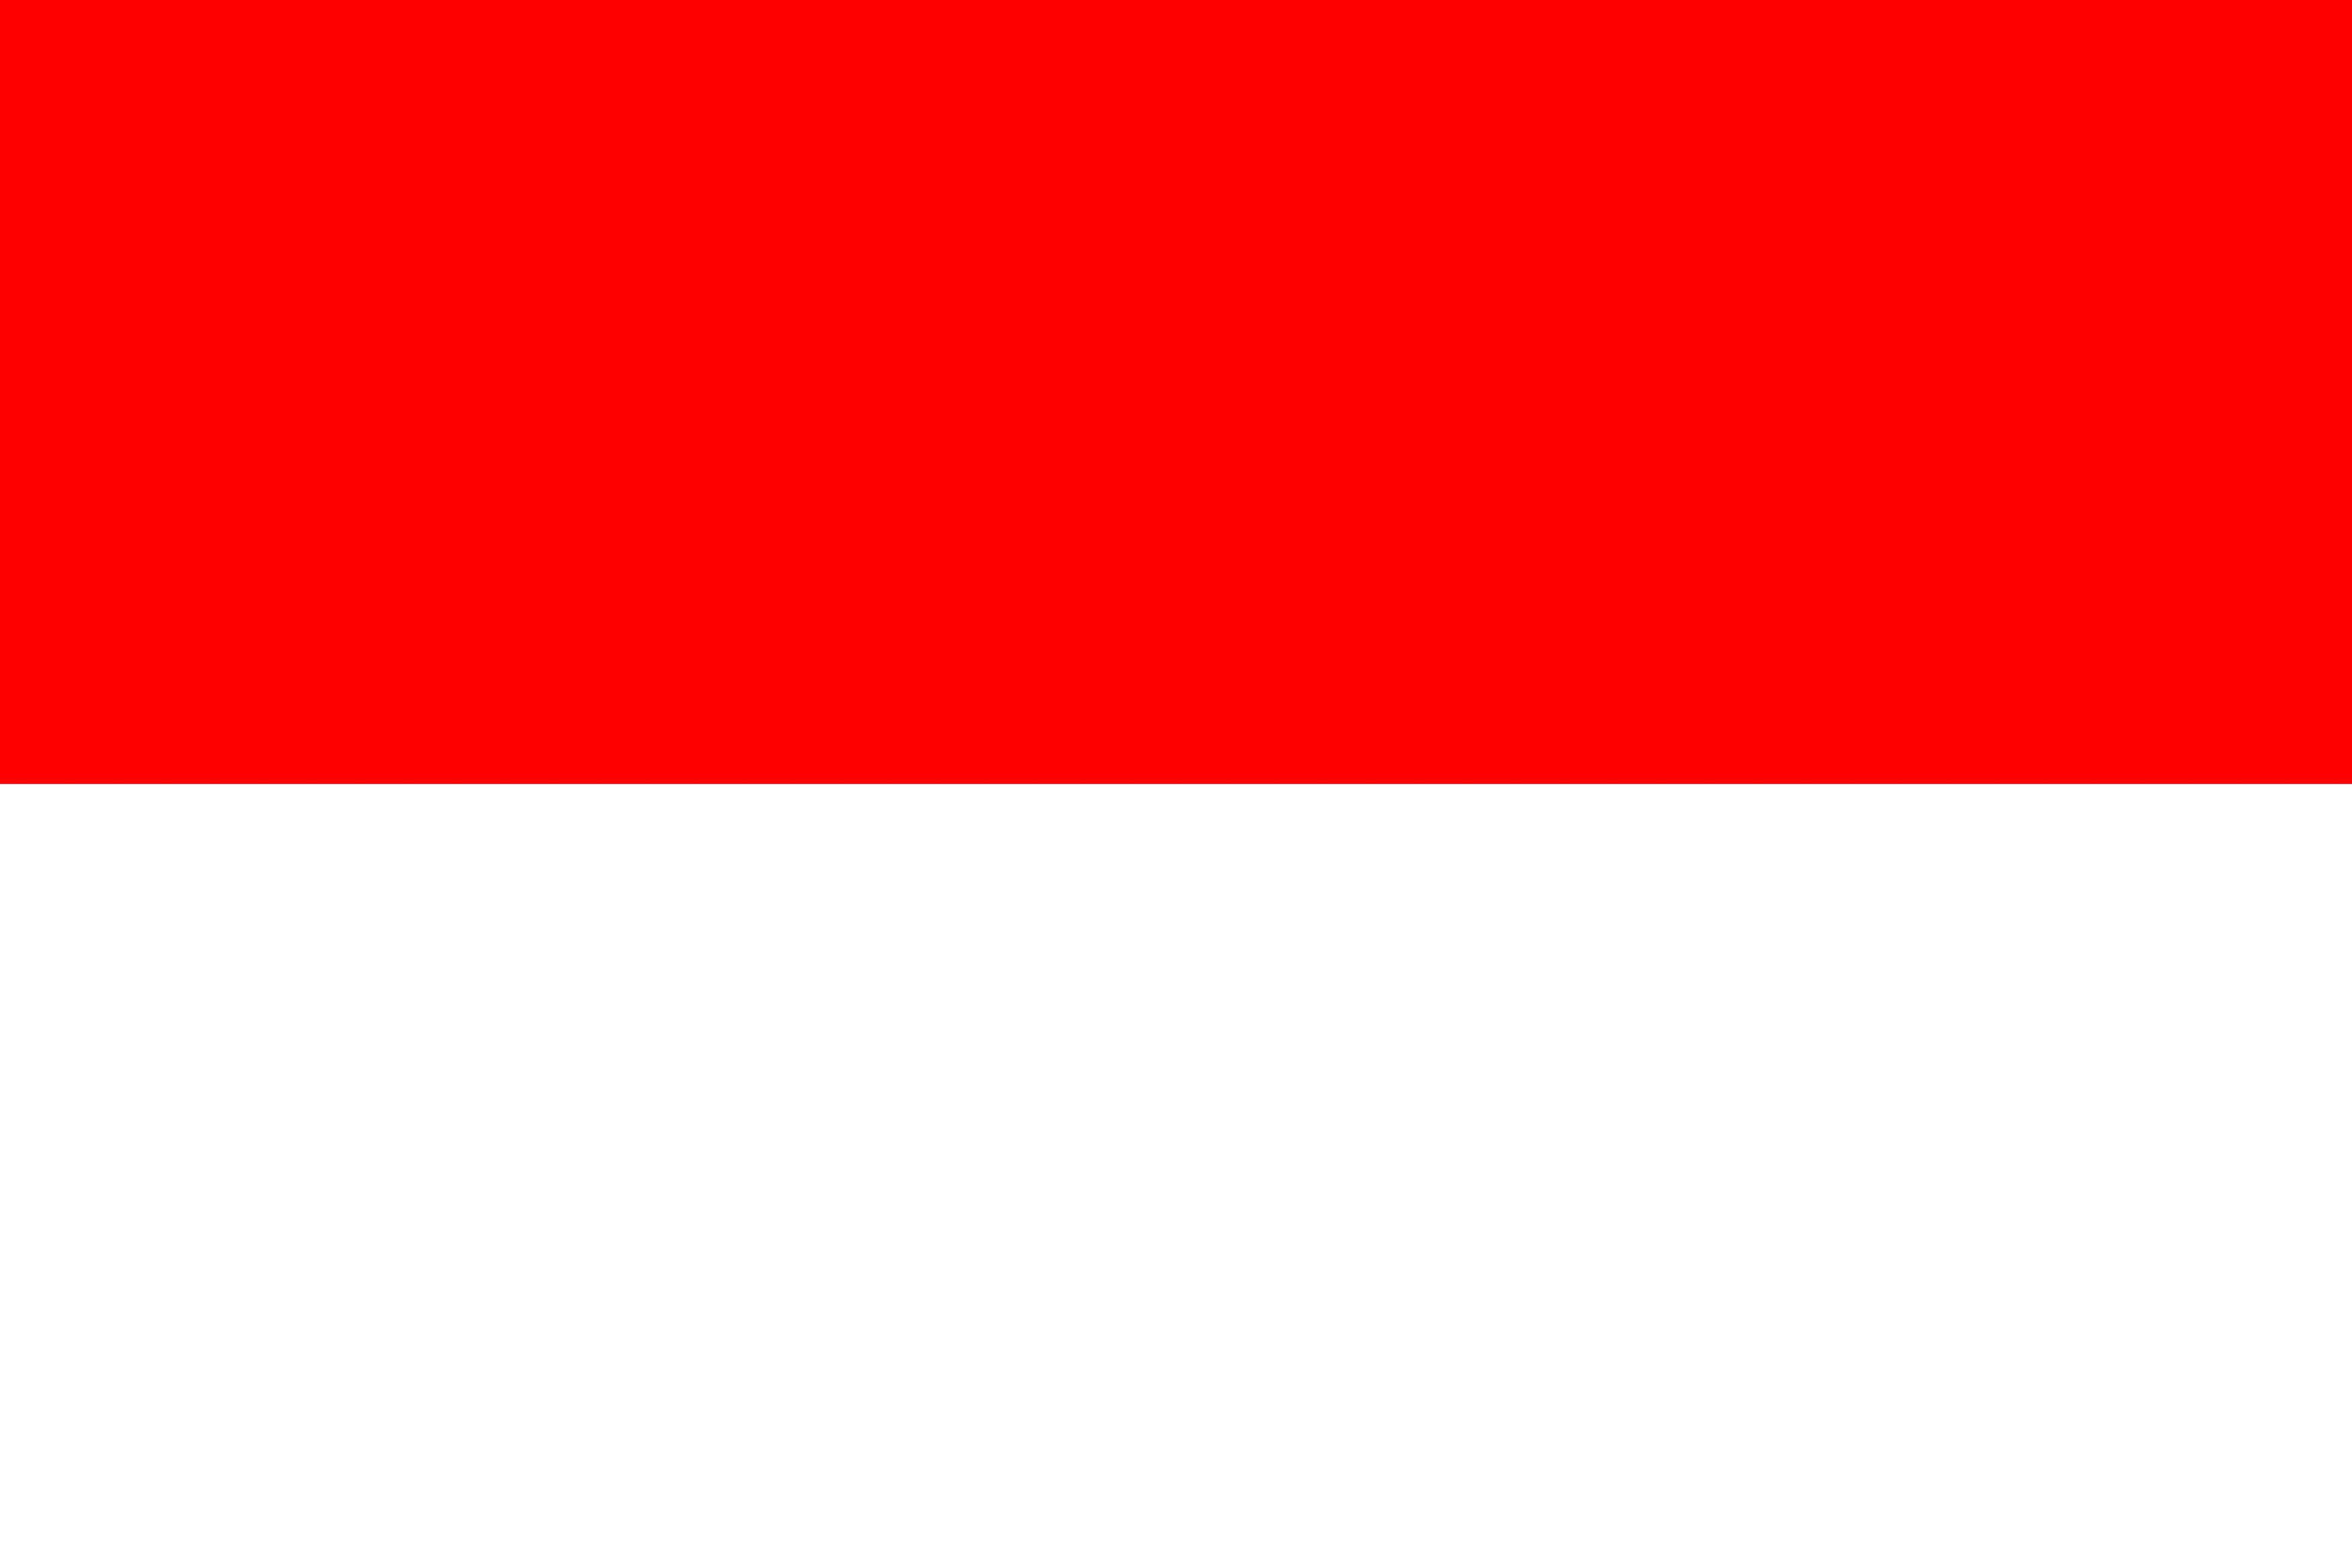 The national flag of Indonesia is a bicolor flag of red (top) and white equal horizontal bands.